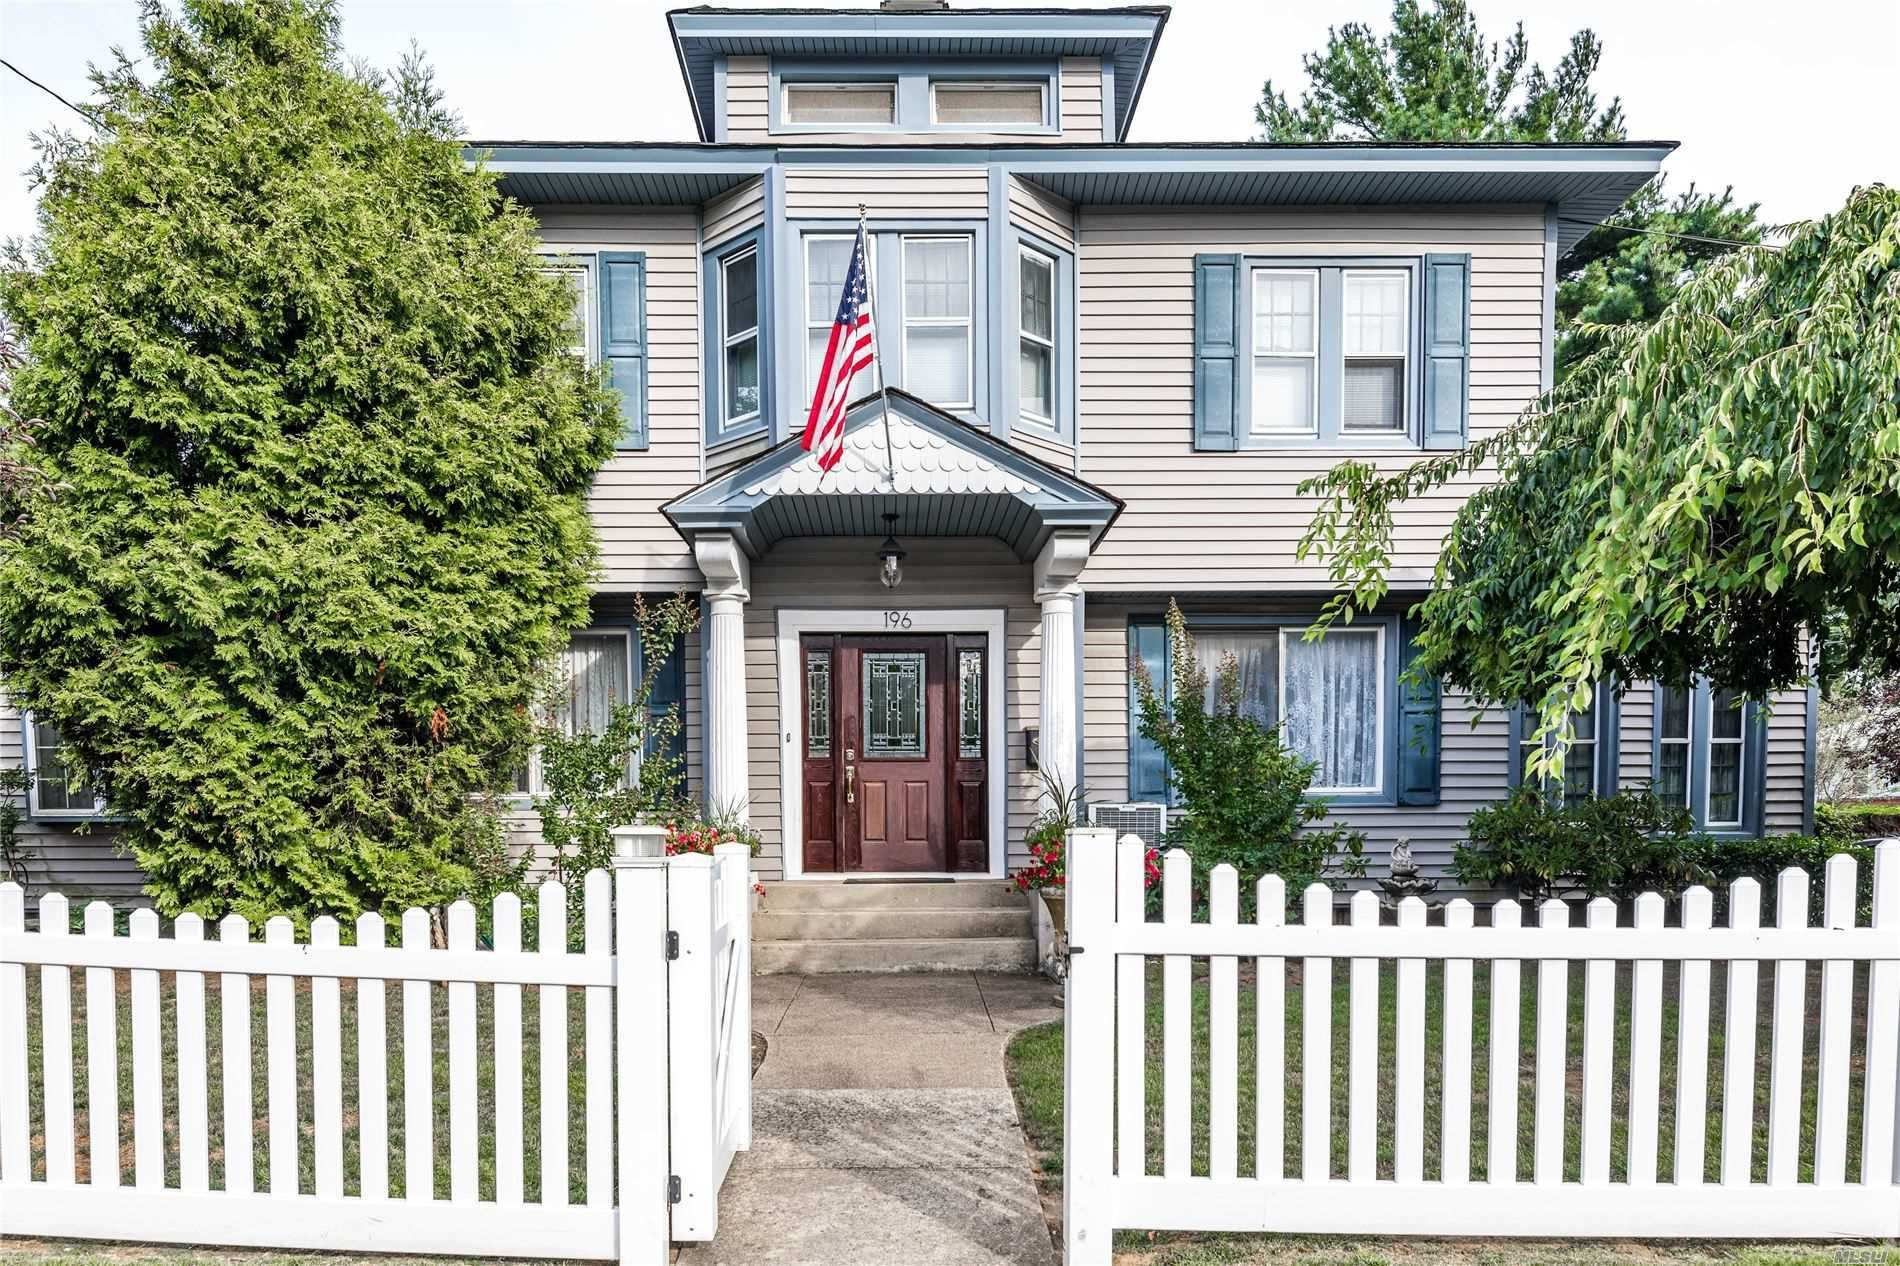 196 Union Avenue, Lynbrook, NY 11563 - MLS#: 3239813